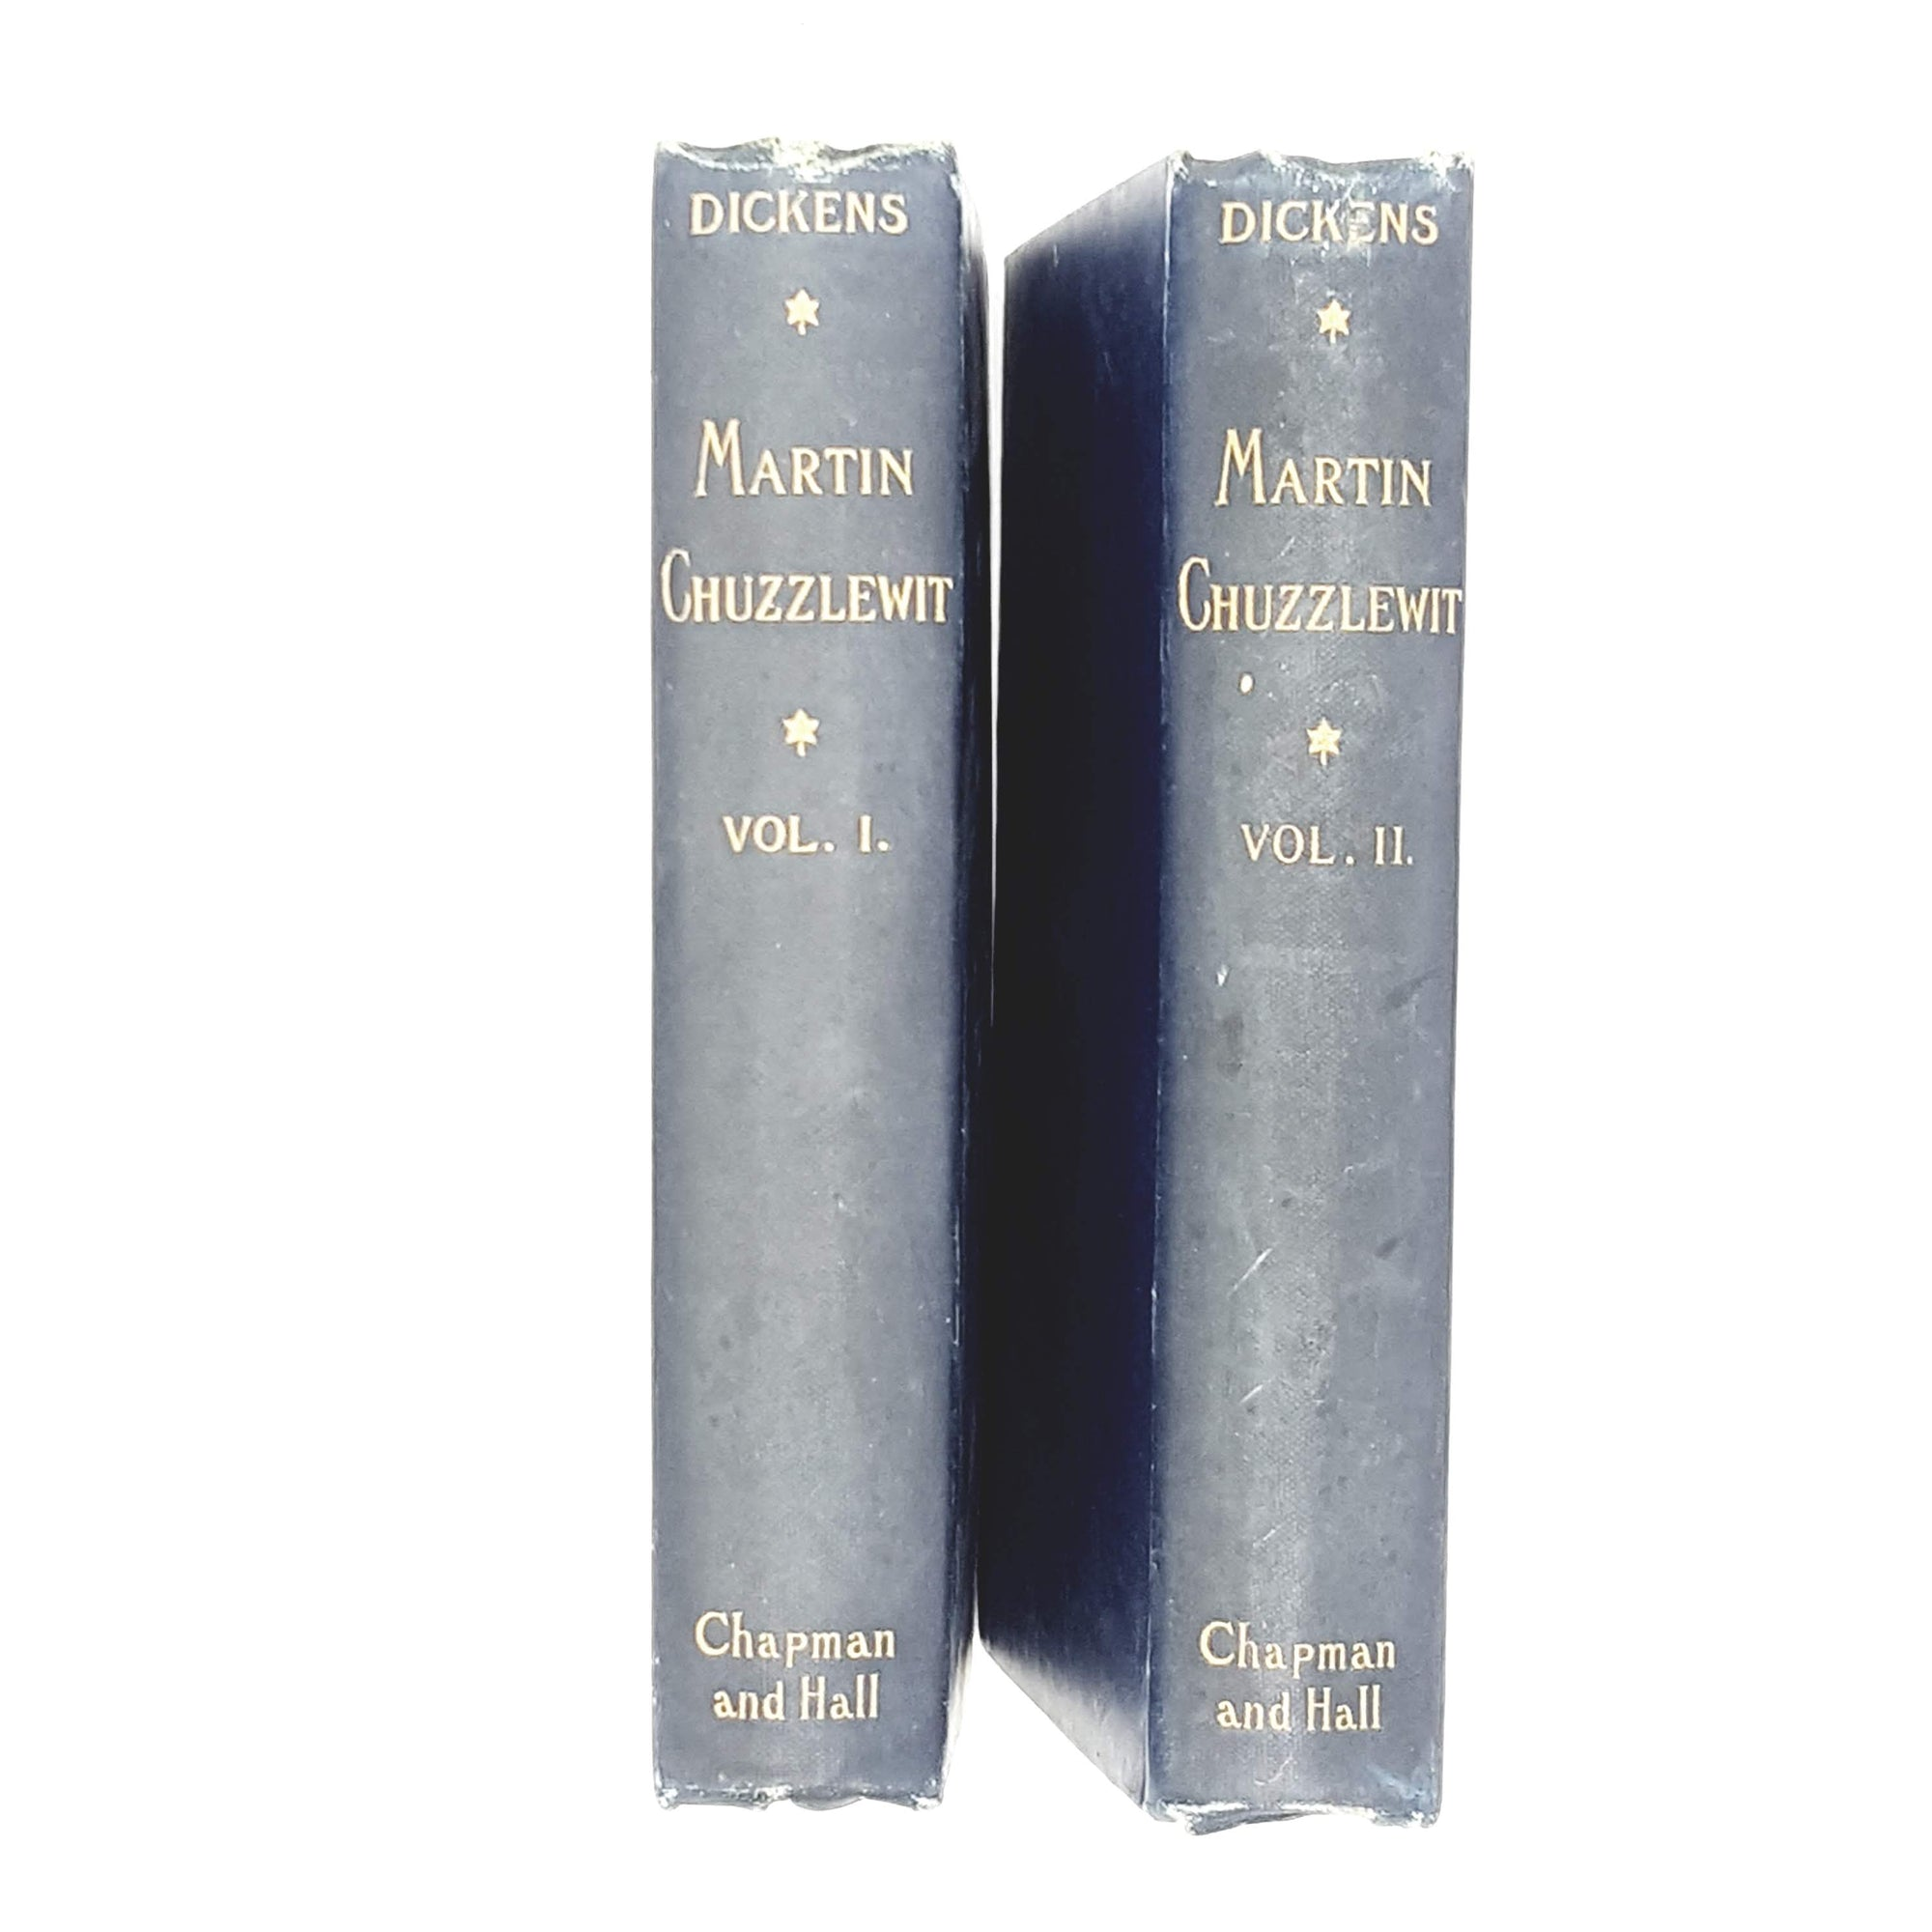 Collection Charles Dickens' Martin Chuzzlewit 1889